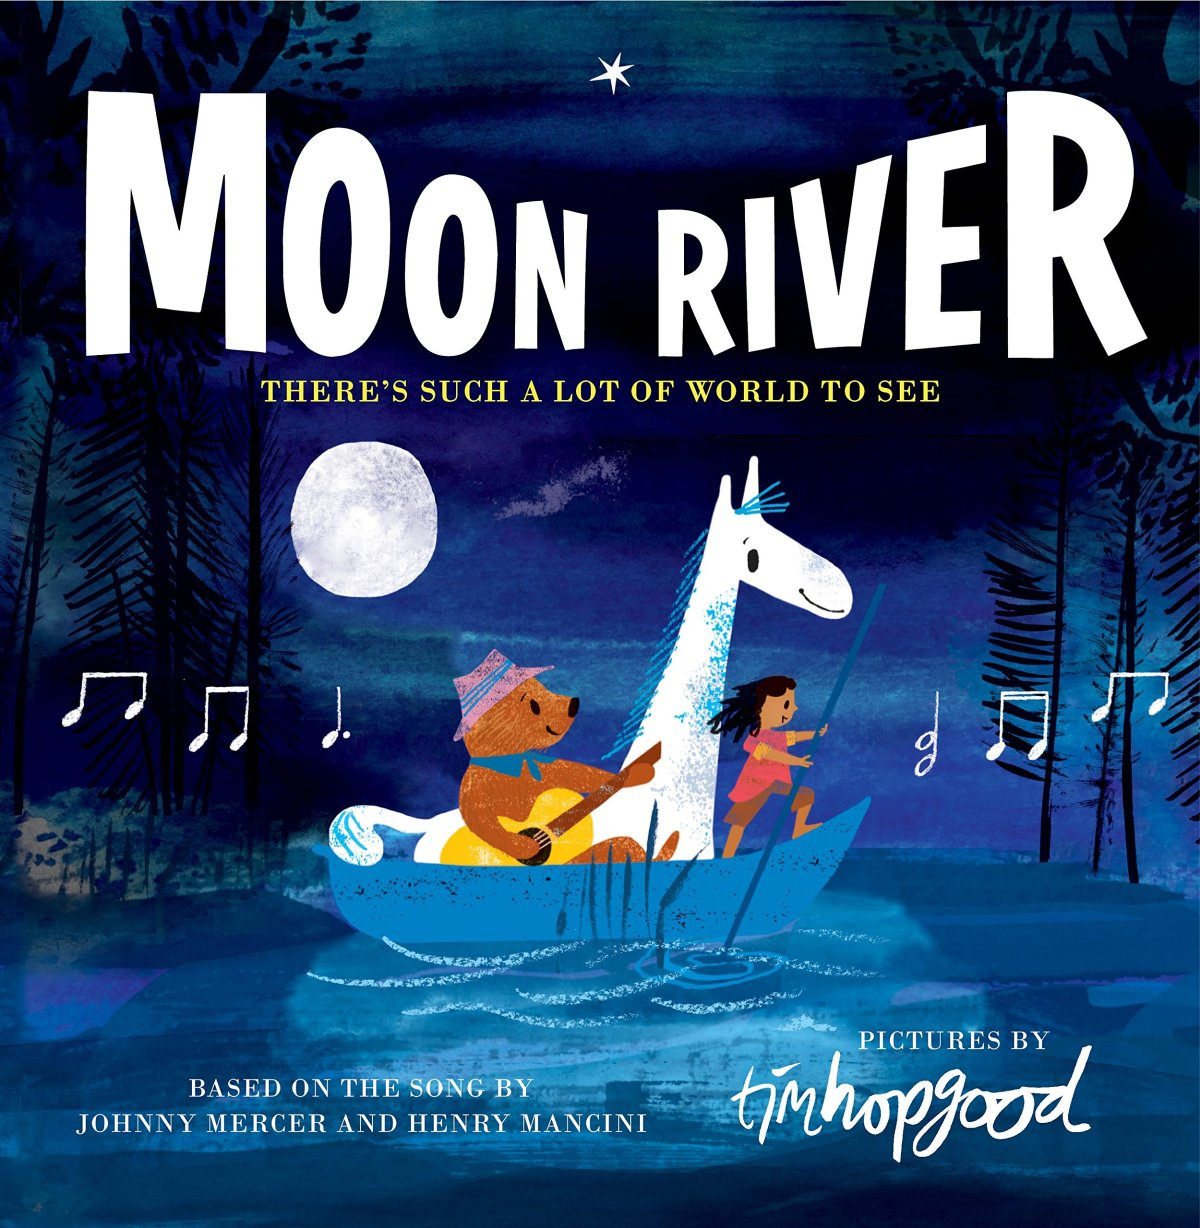 moon river cover image